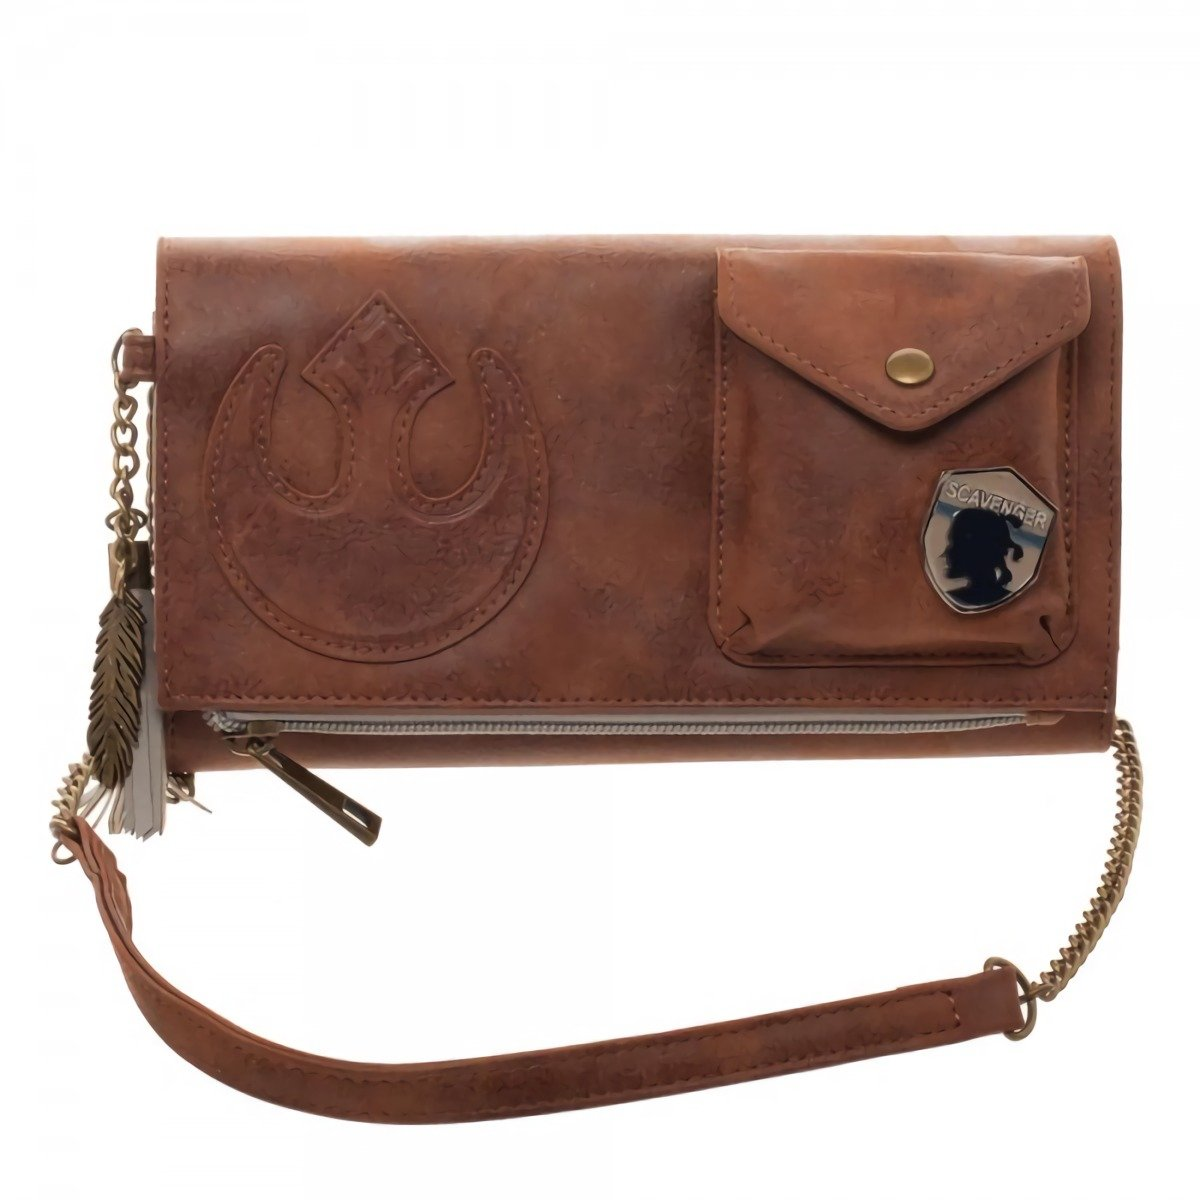 Star Wars: The Last Jedi Rebel Crossbody billetera